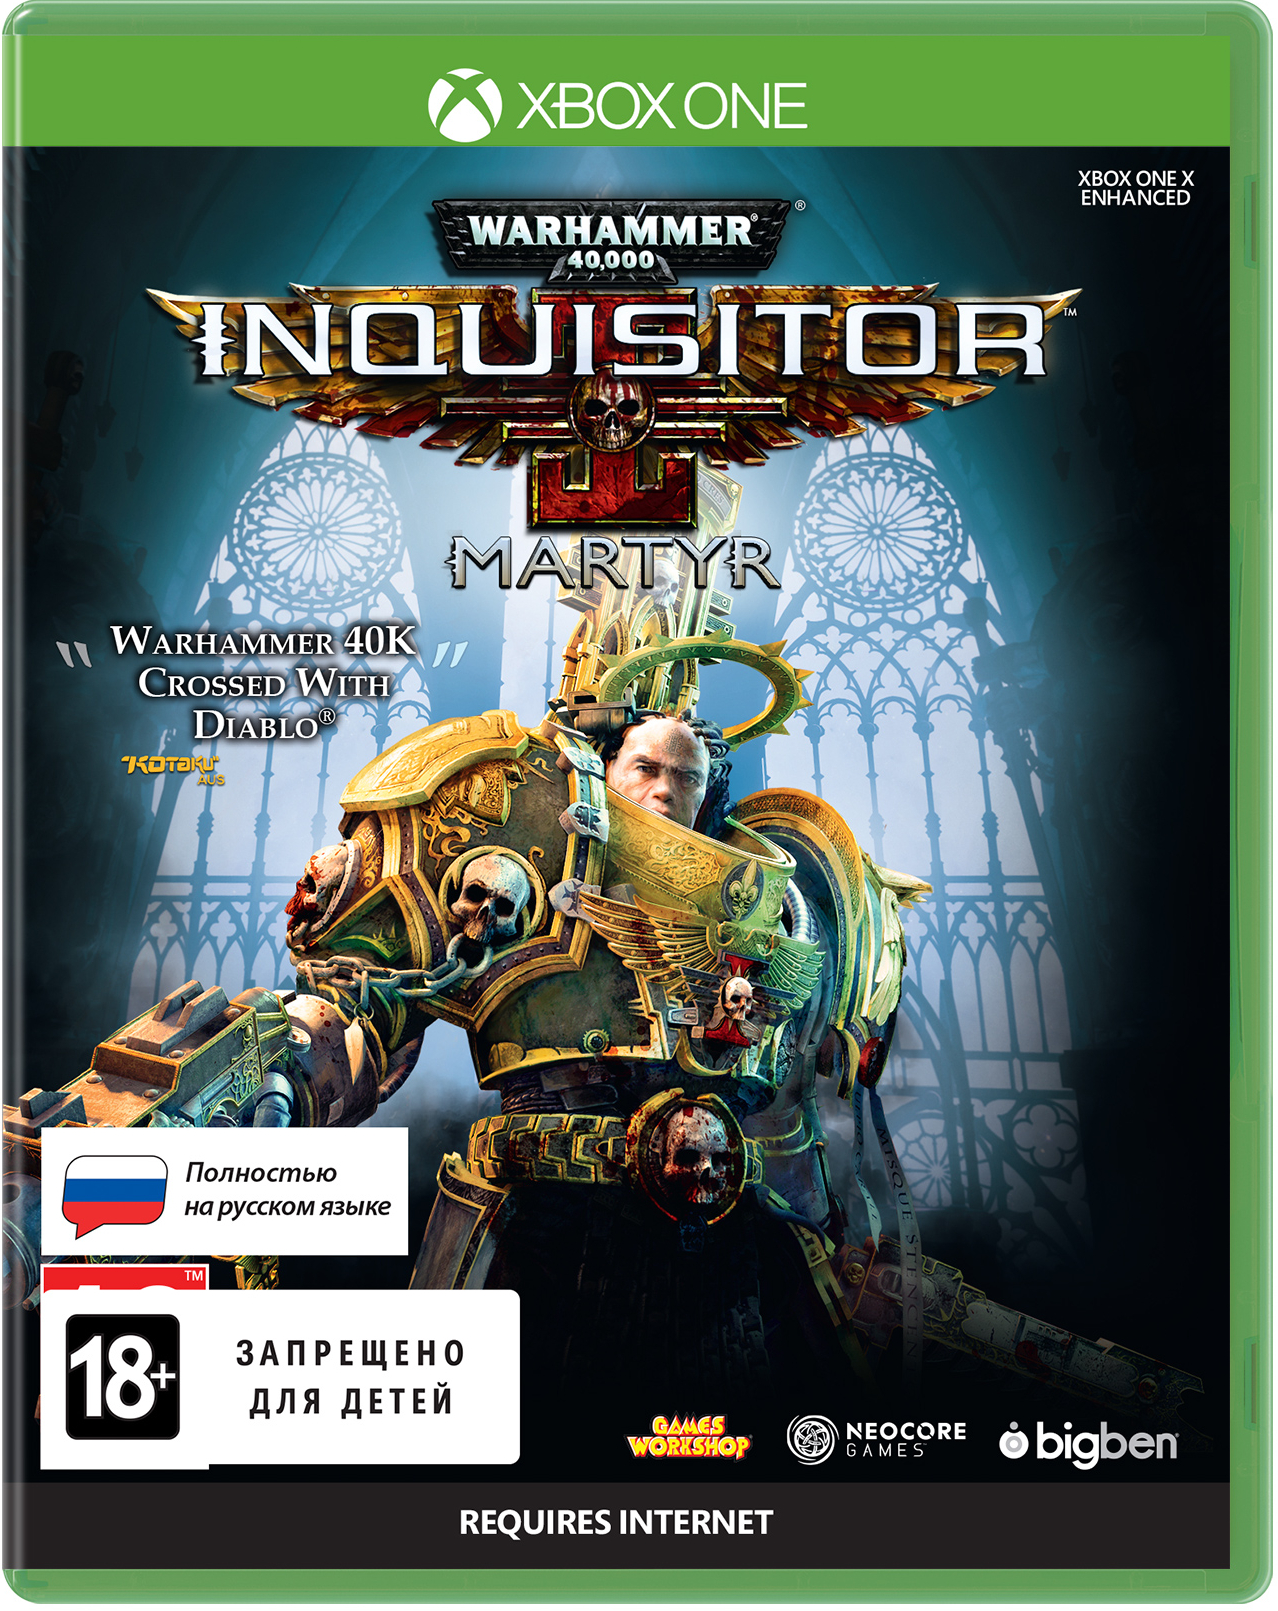 Warhammer 40,000: Inquisitor – Martyr [Xbox One] warhammer 40 000 inquisitor – martyr [ps4]